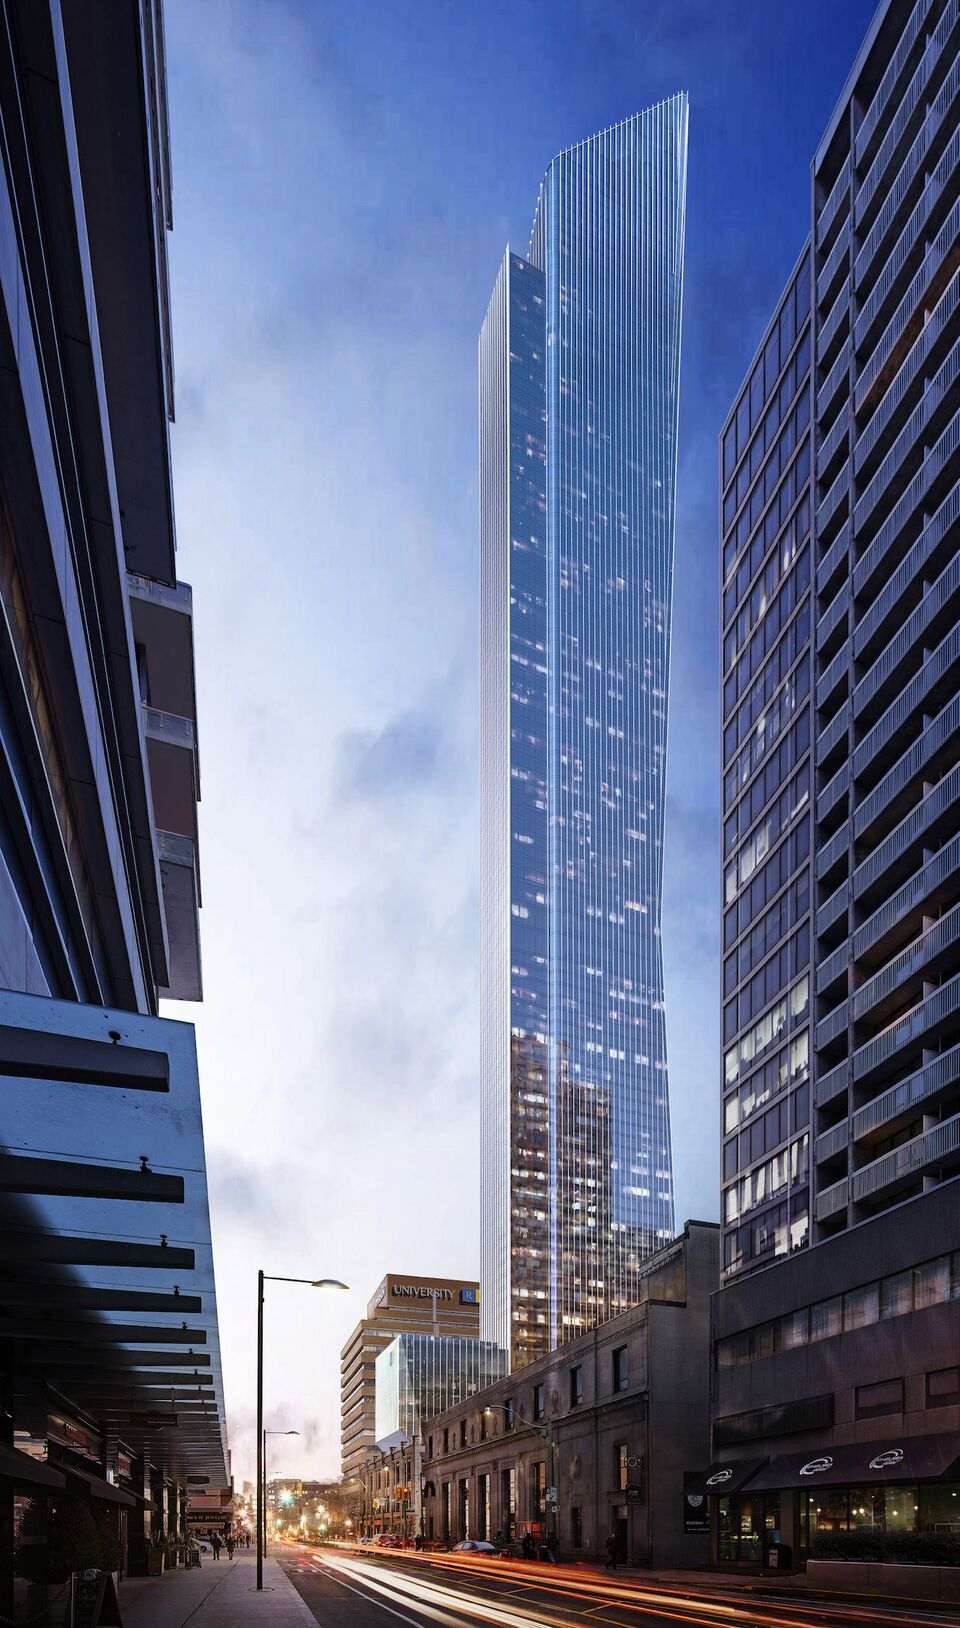 The Sculptural 3439m Version Of Proposal By Kohn Pederson Fox And ArchitectsAlliance For Cresford